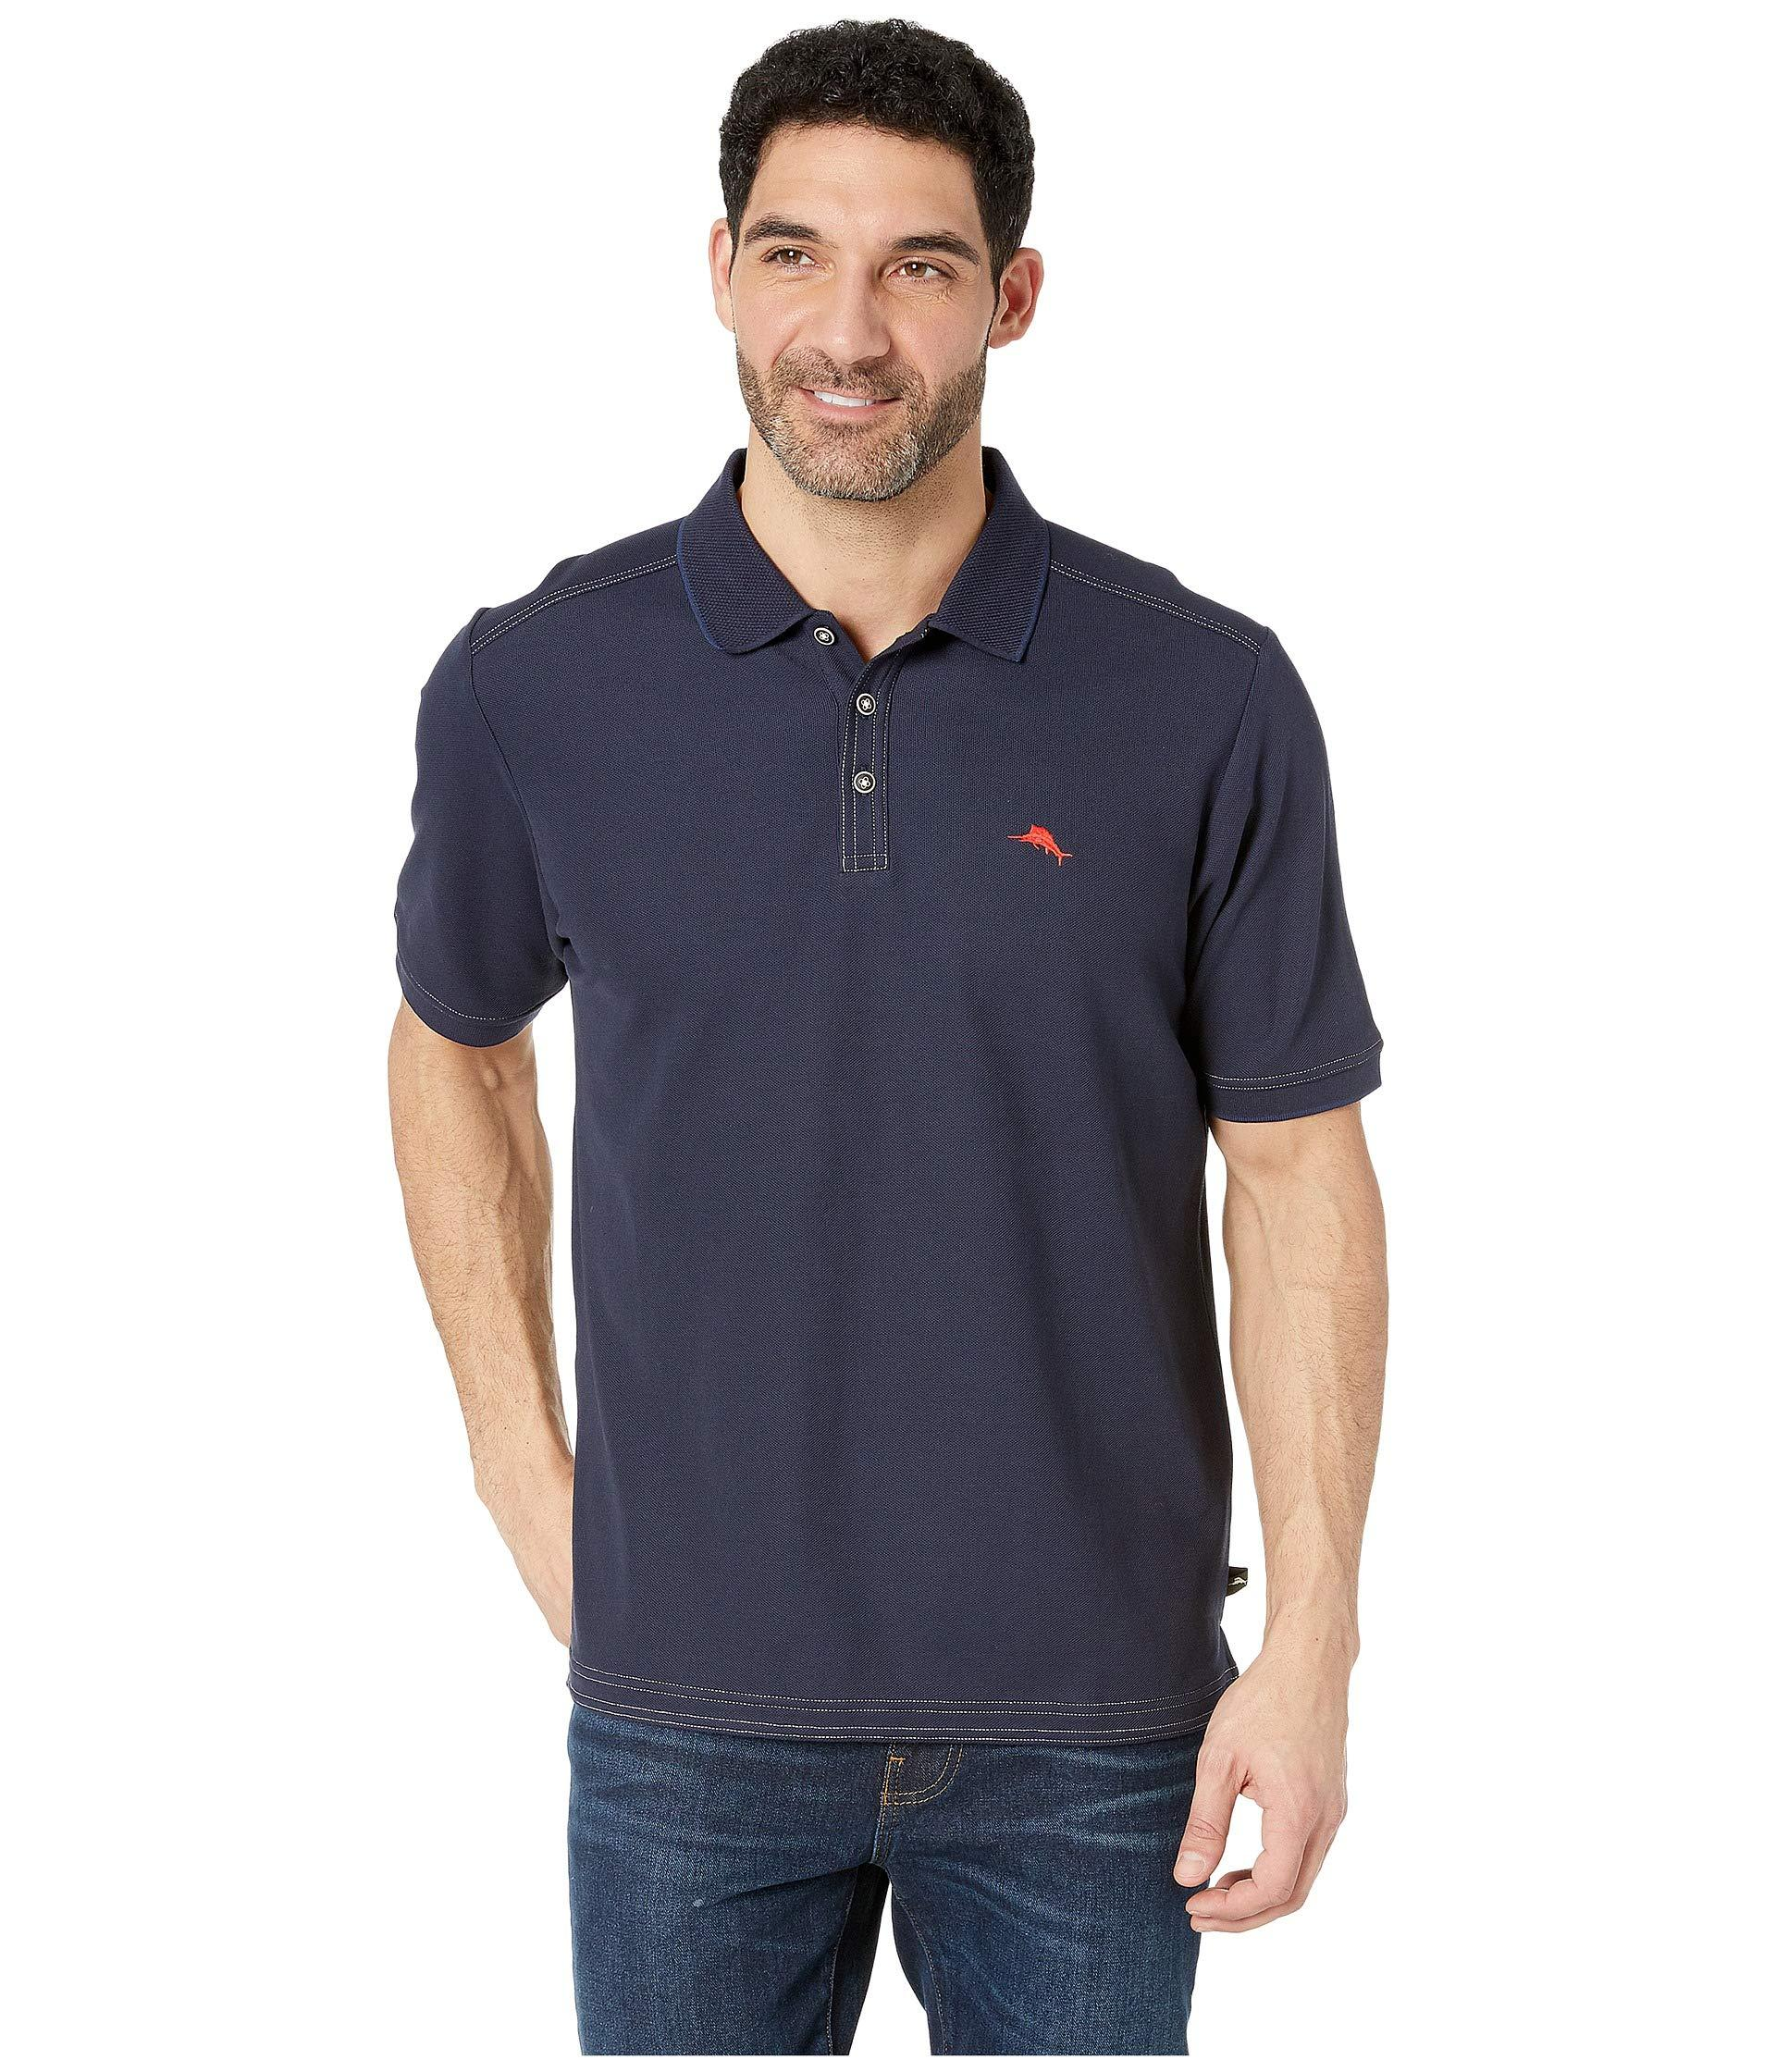 346928246ae719 Lyst - Tommy Bahama Emfielder 2.0 Polo (blue Note) Men s Clothing in ...